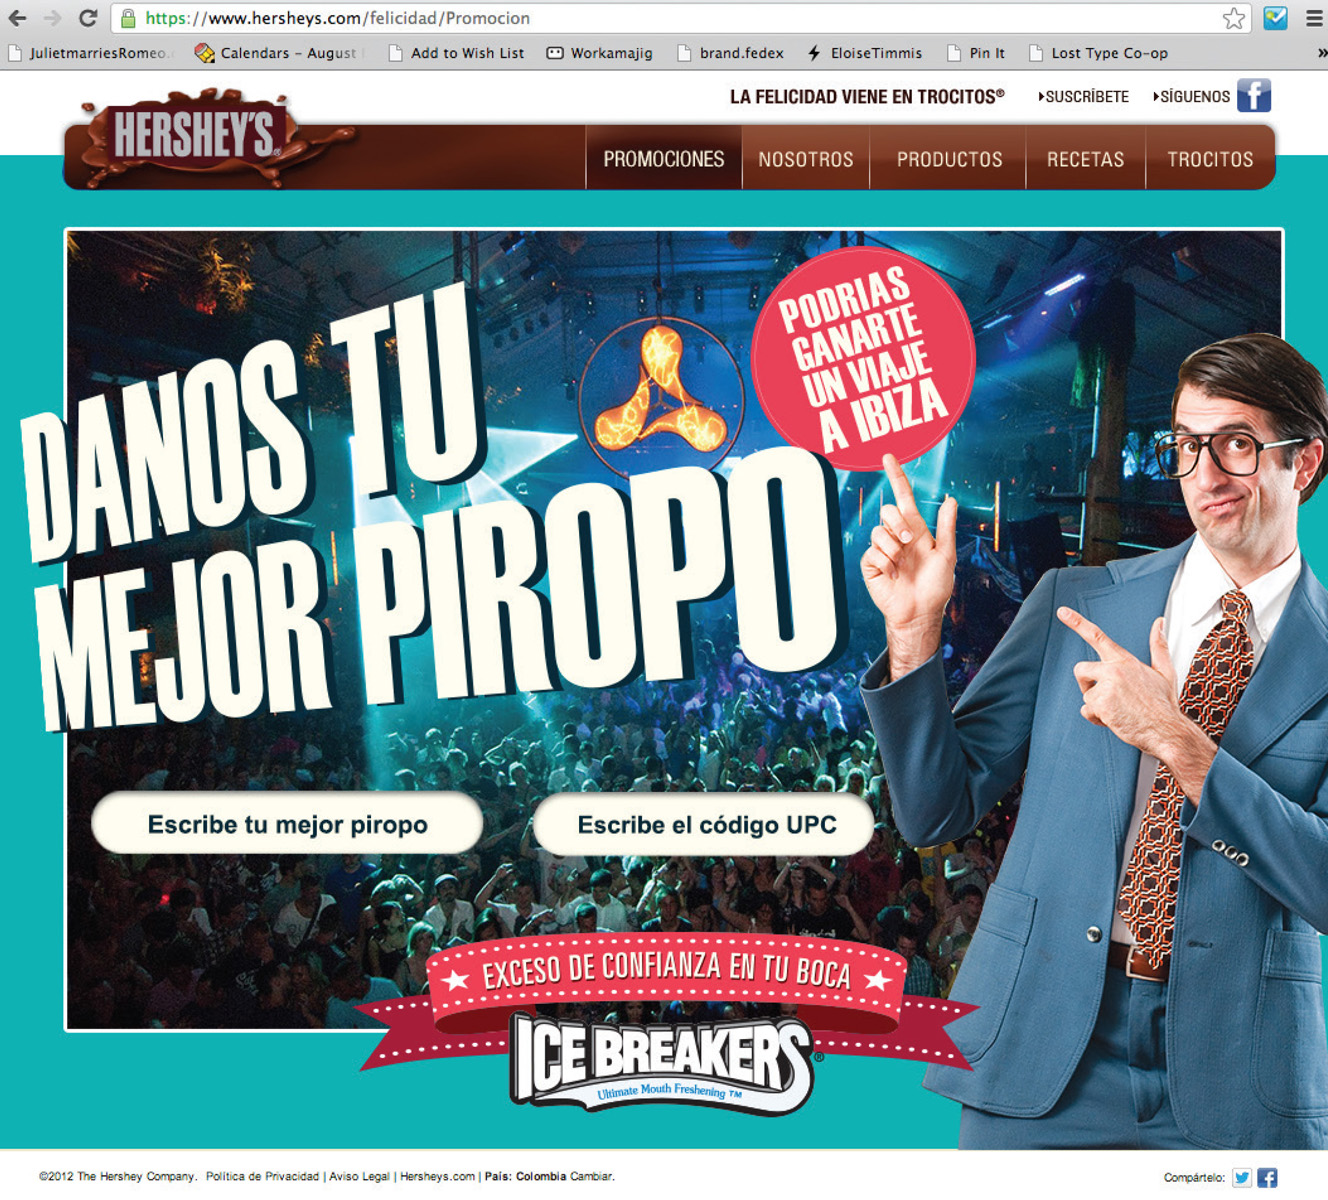 Hersheys_campaigns2013.indd